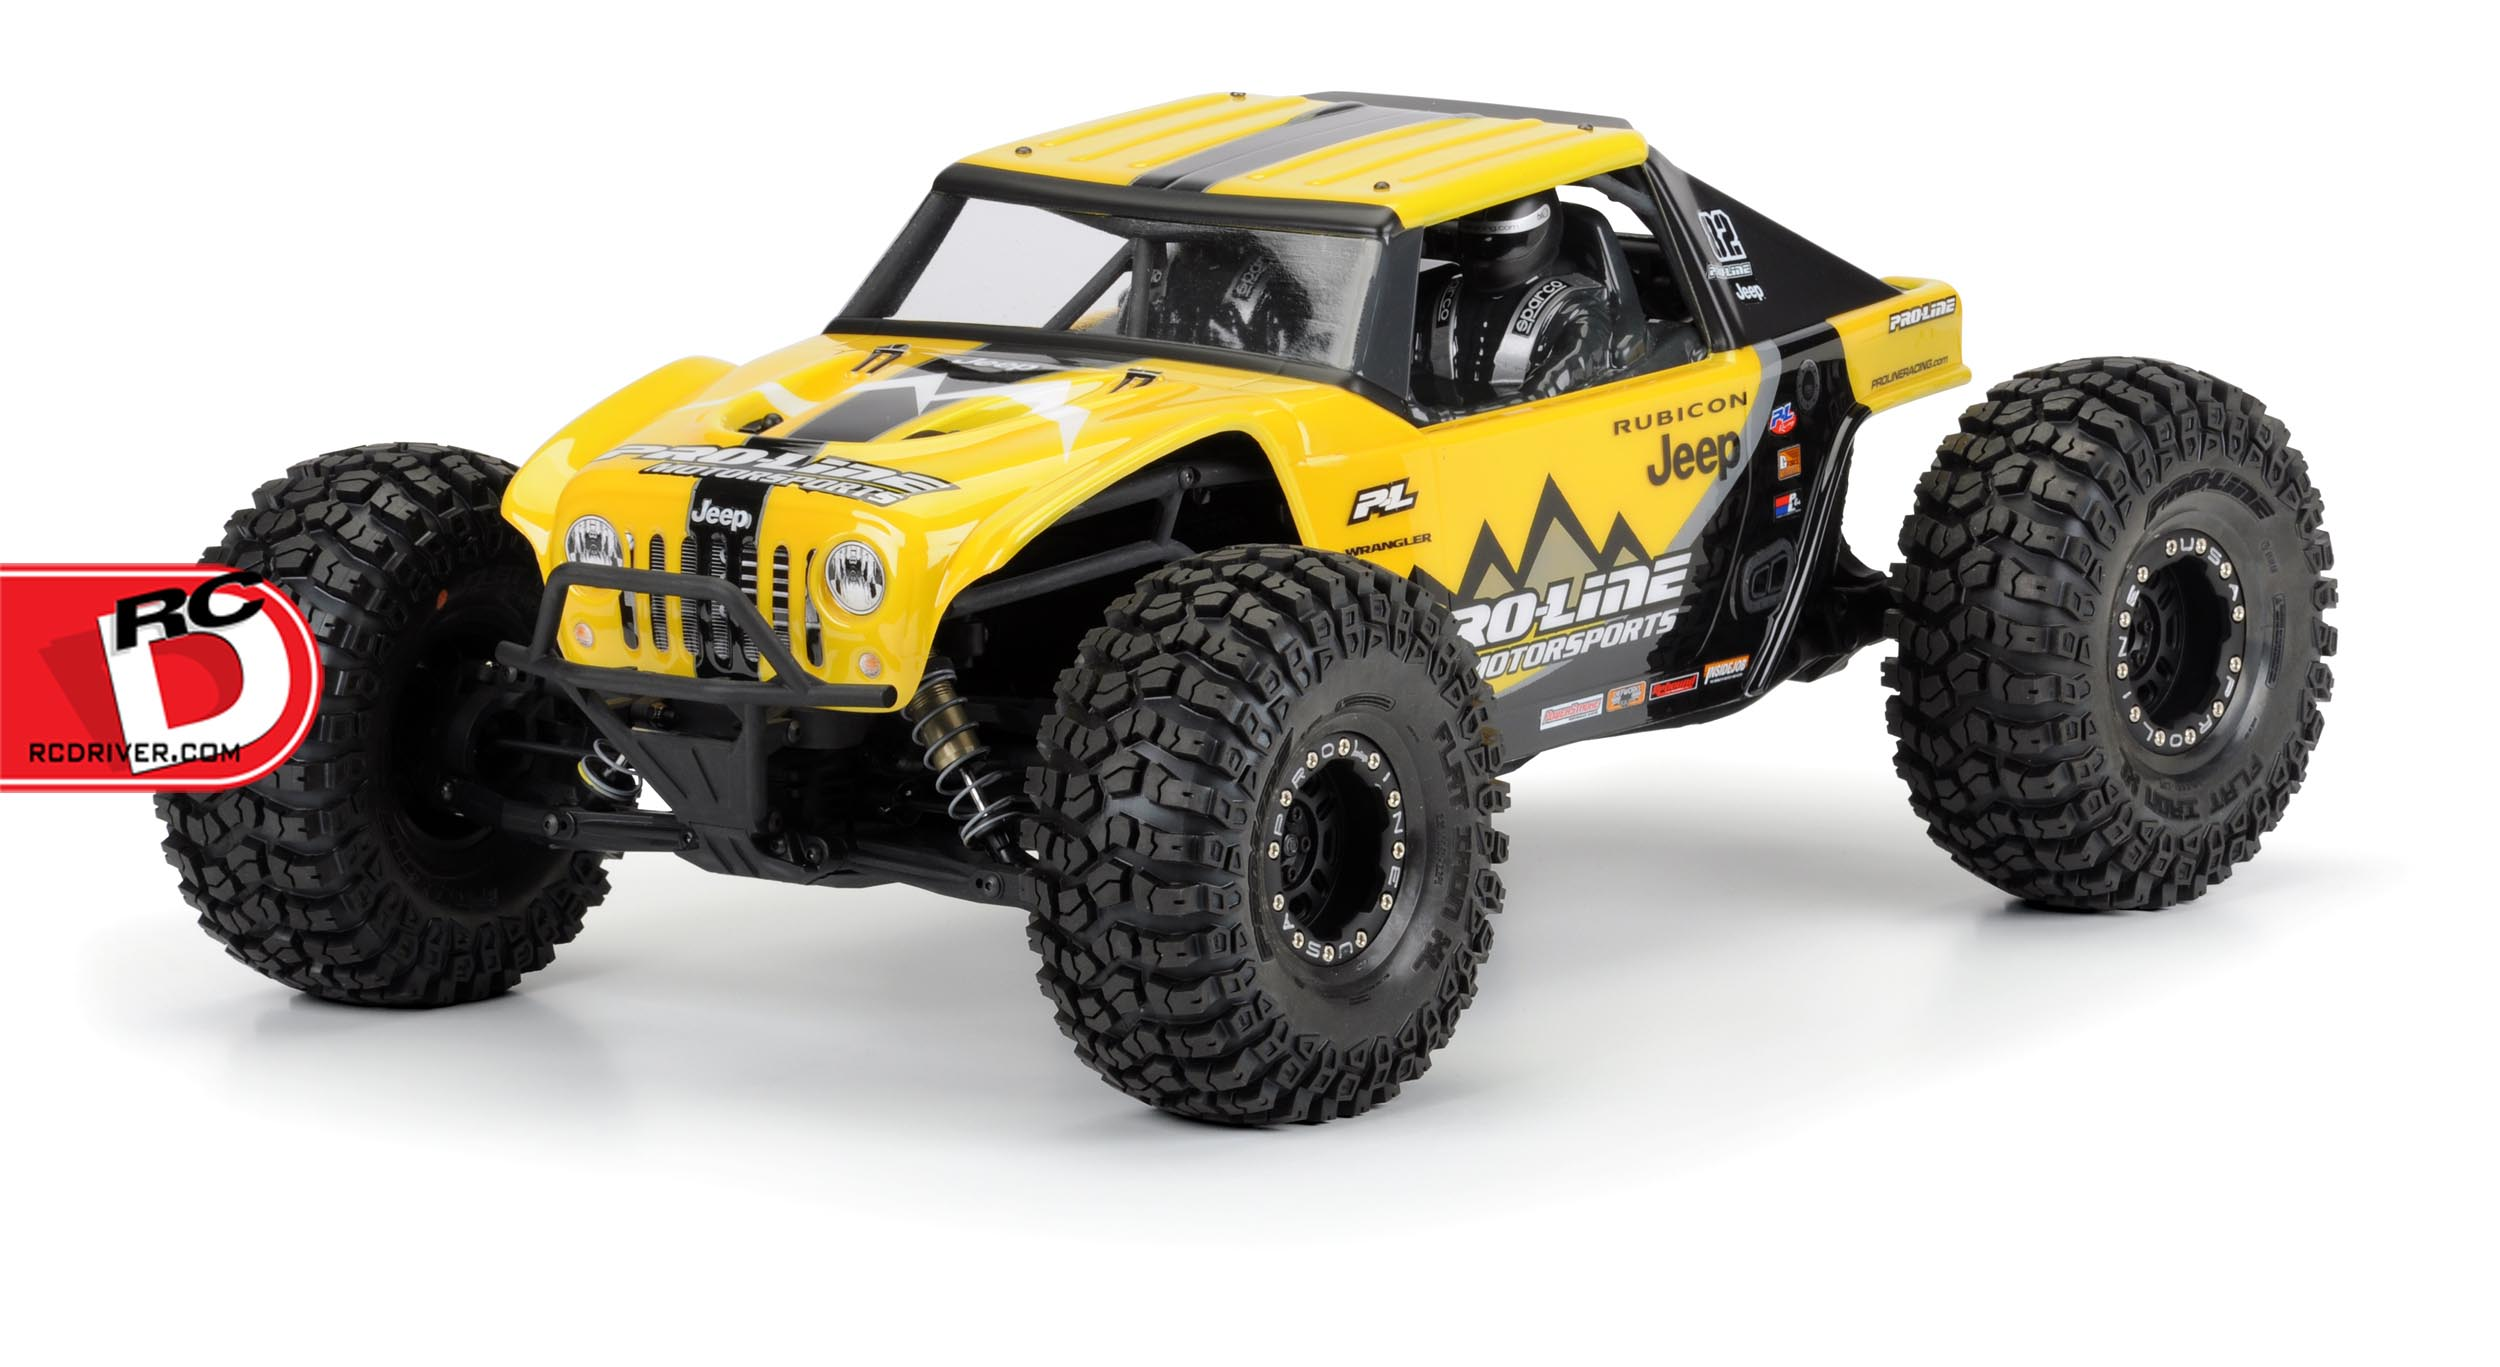 Pro-Line Jeep Wrangler Rubicon Clear Body For The Yeti